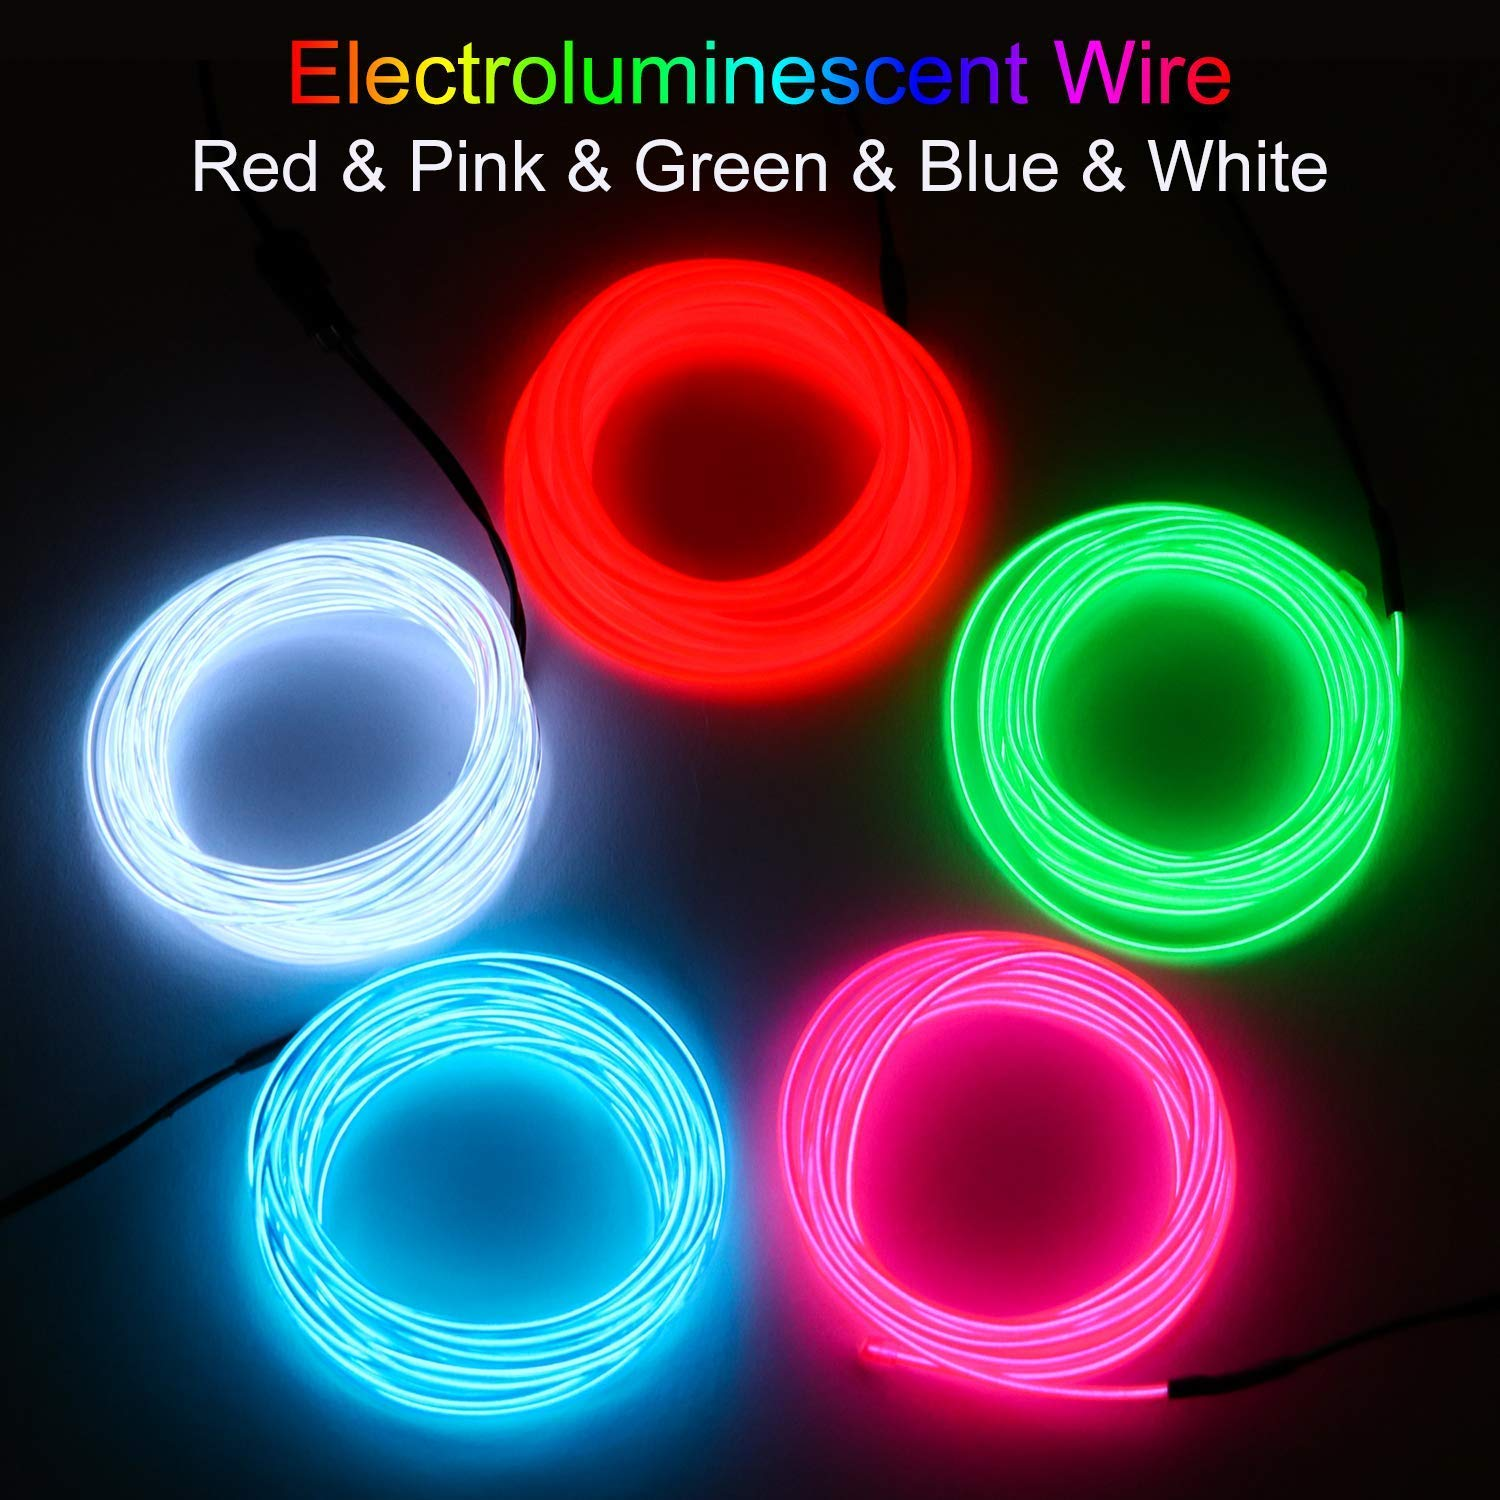 5x3m Neon Light Battery Powered Electroluminescent Wire Glowing Strobing Decorative Light for Xmas Party Pub Litake EL Wire